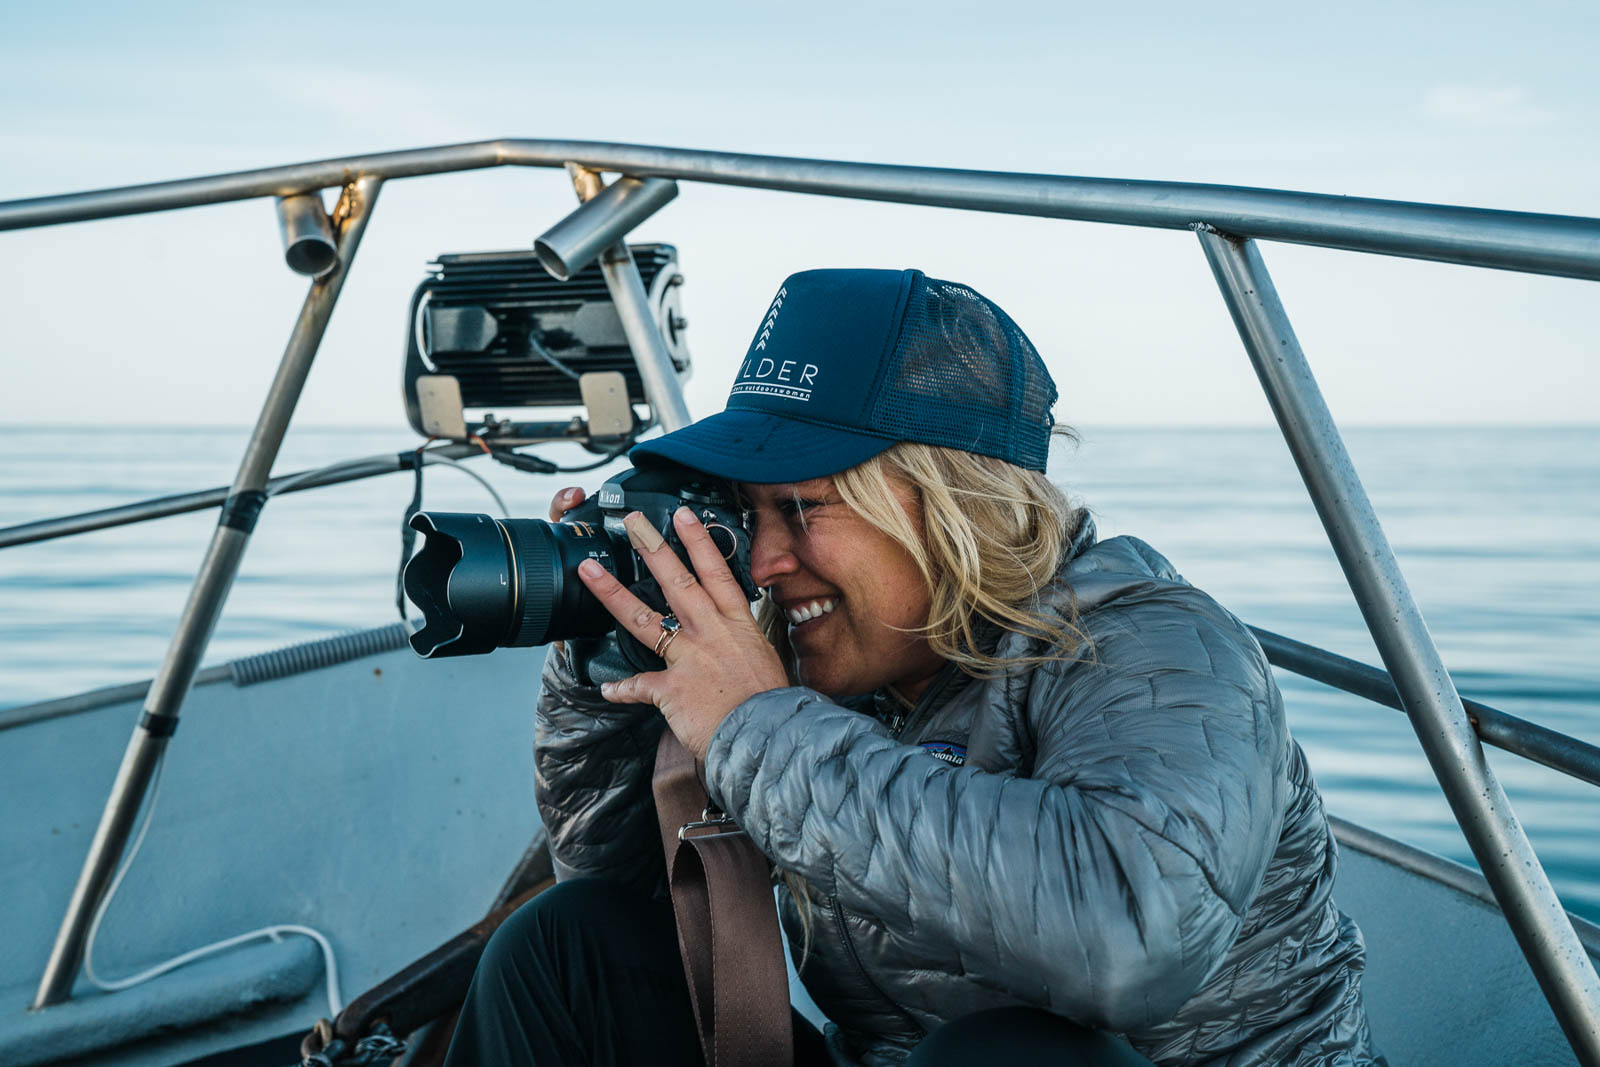 Dawn Heumann, Photographer Alaska BTS